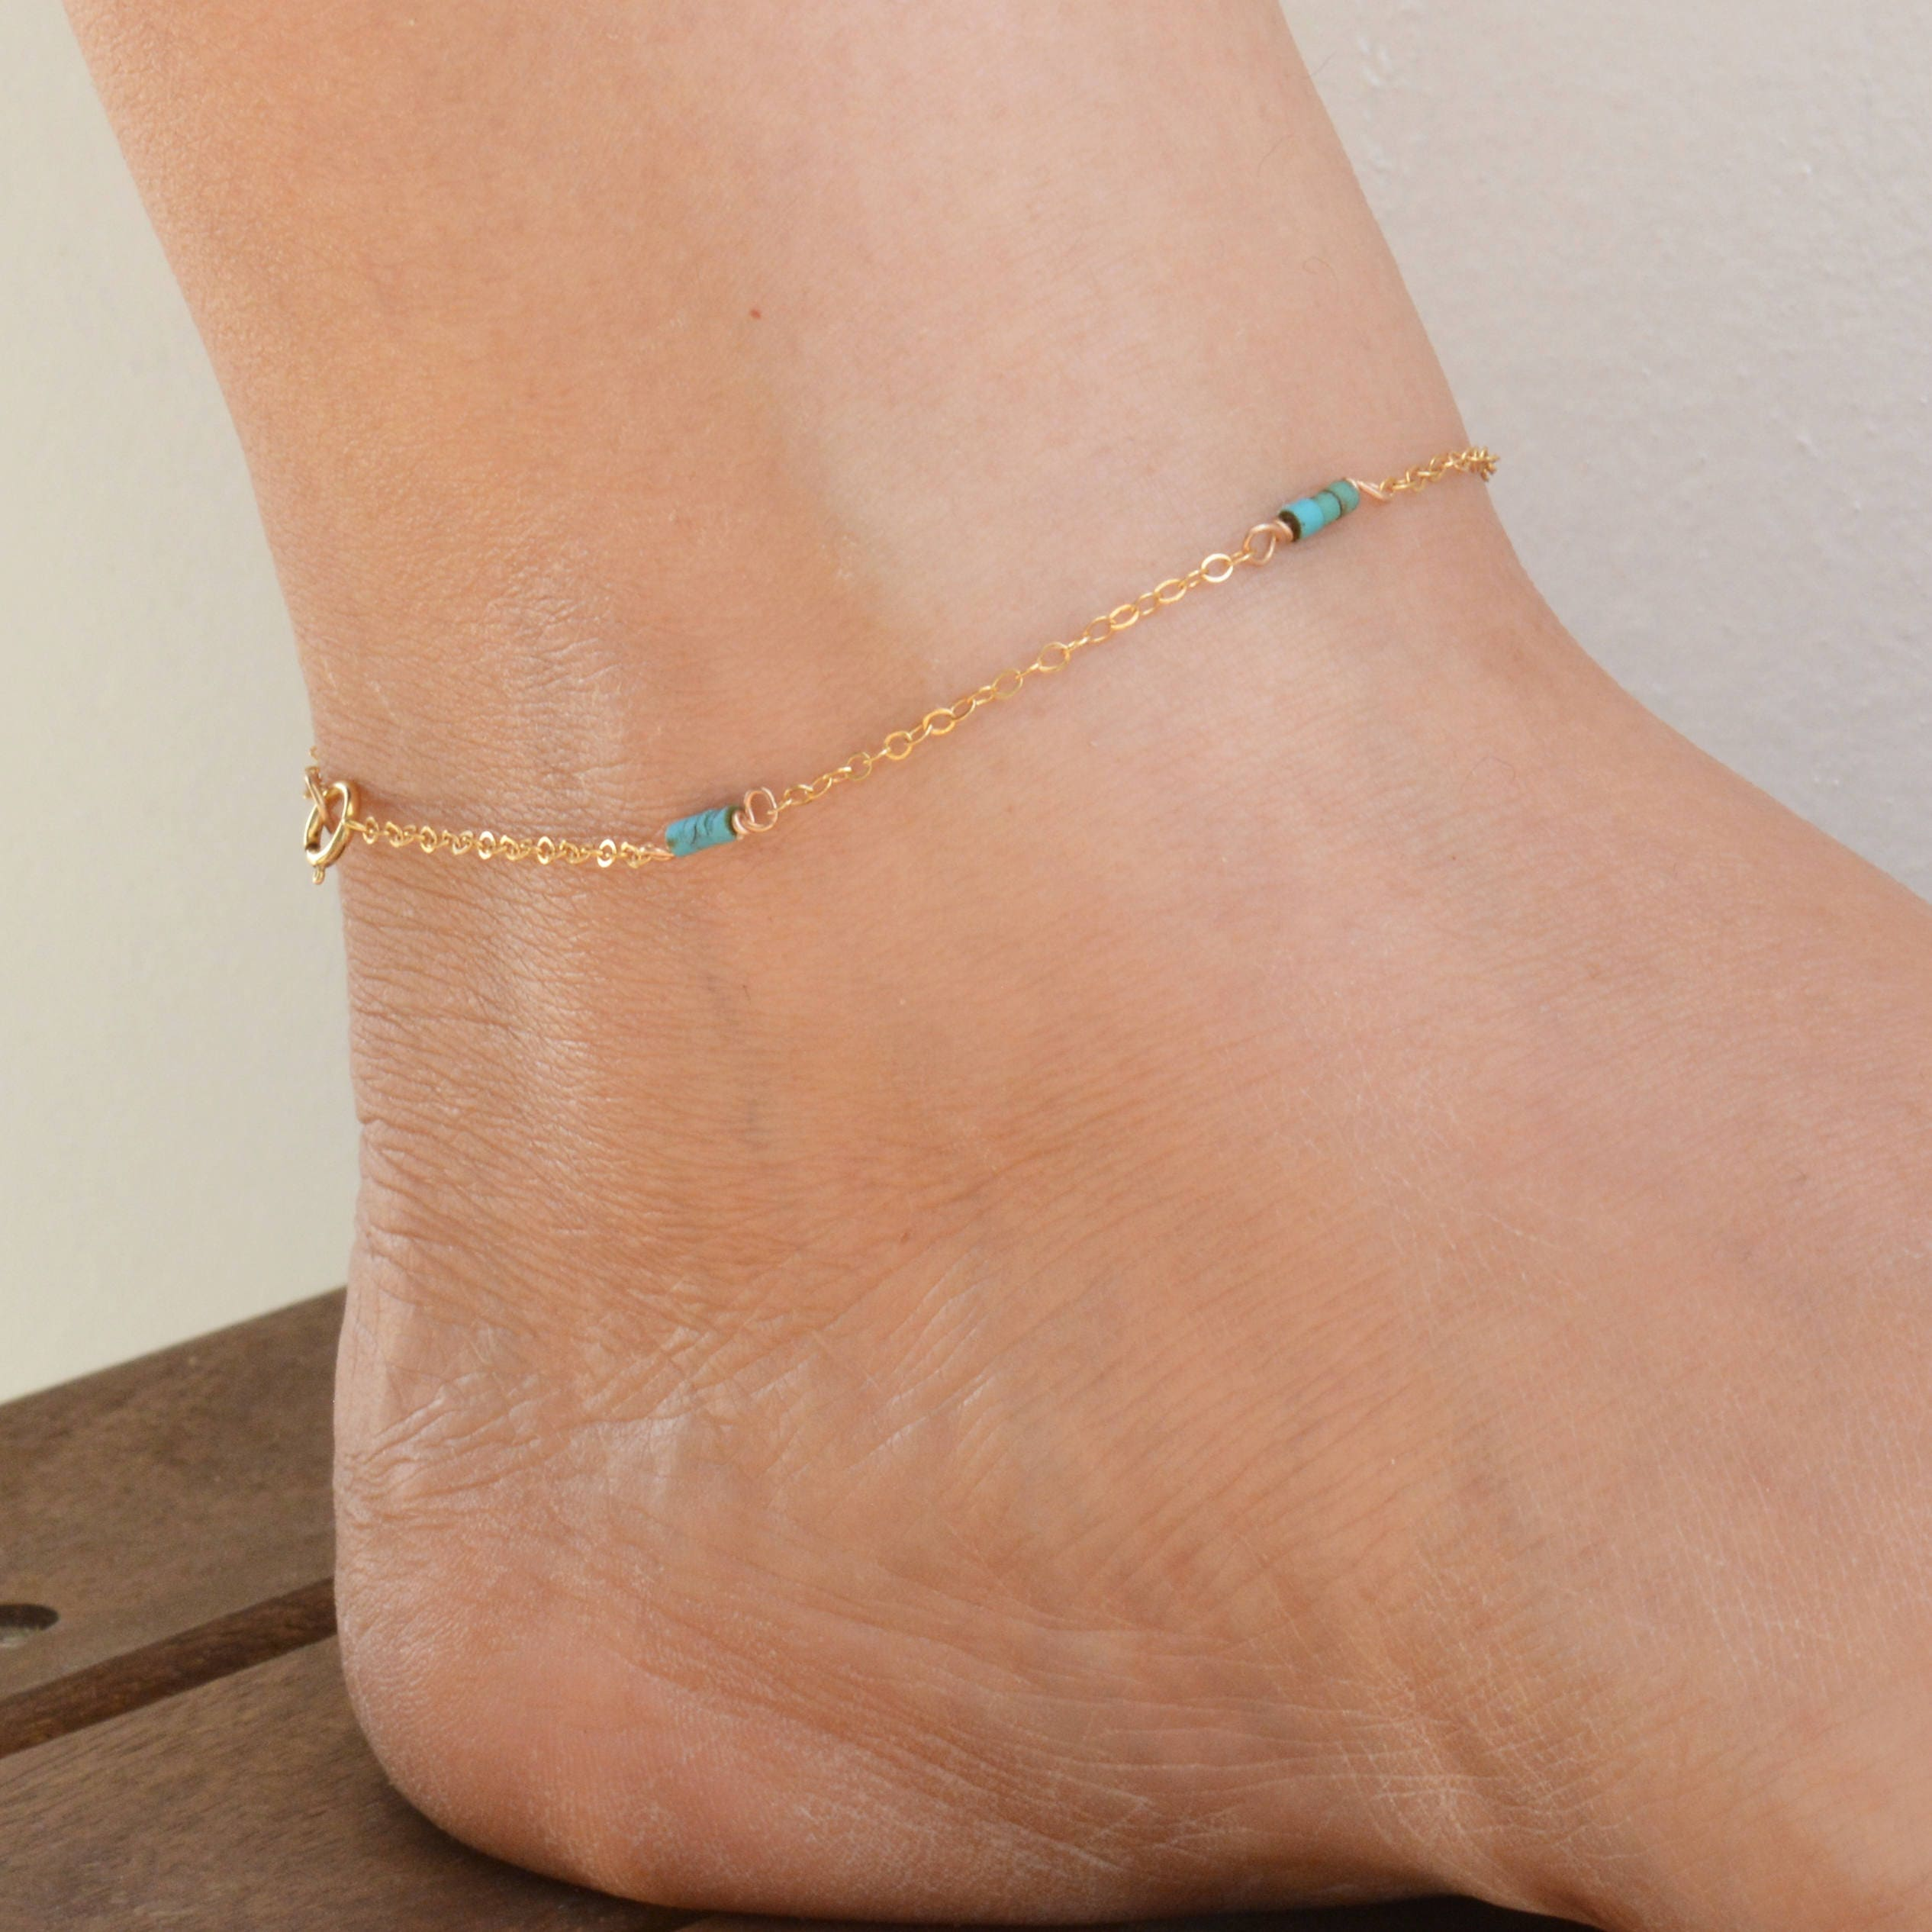 ever anklet brother necklaces articles elite collection widest pendants from and earrings in for women silver select anklets trinkets rings gold gift the bhima